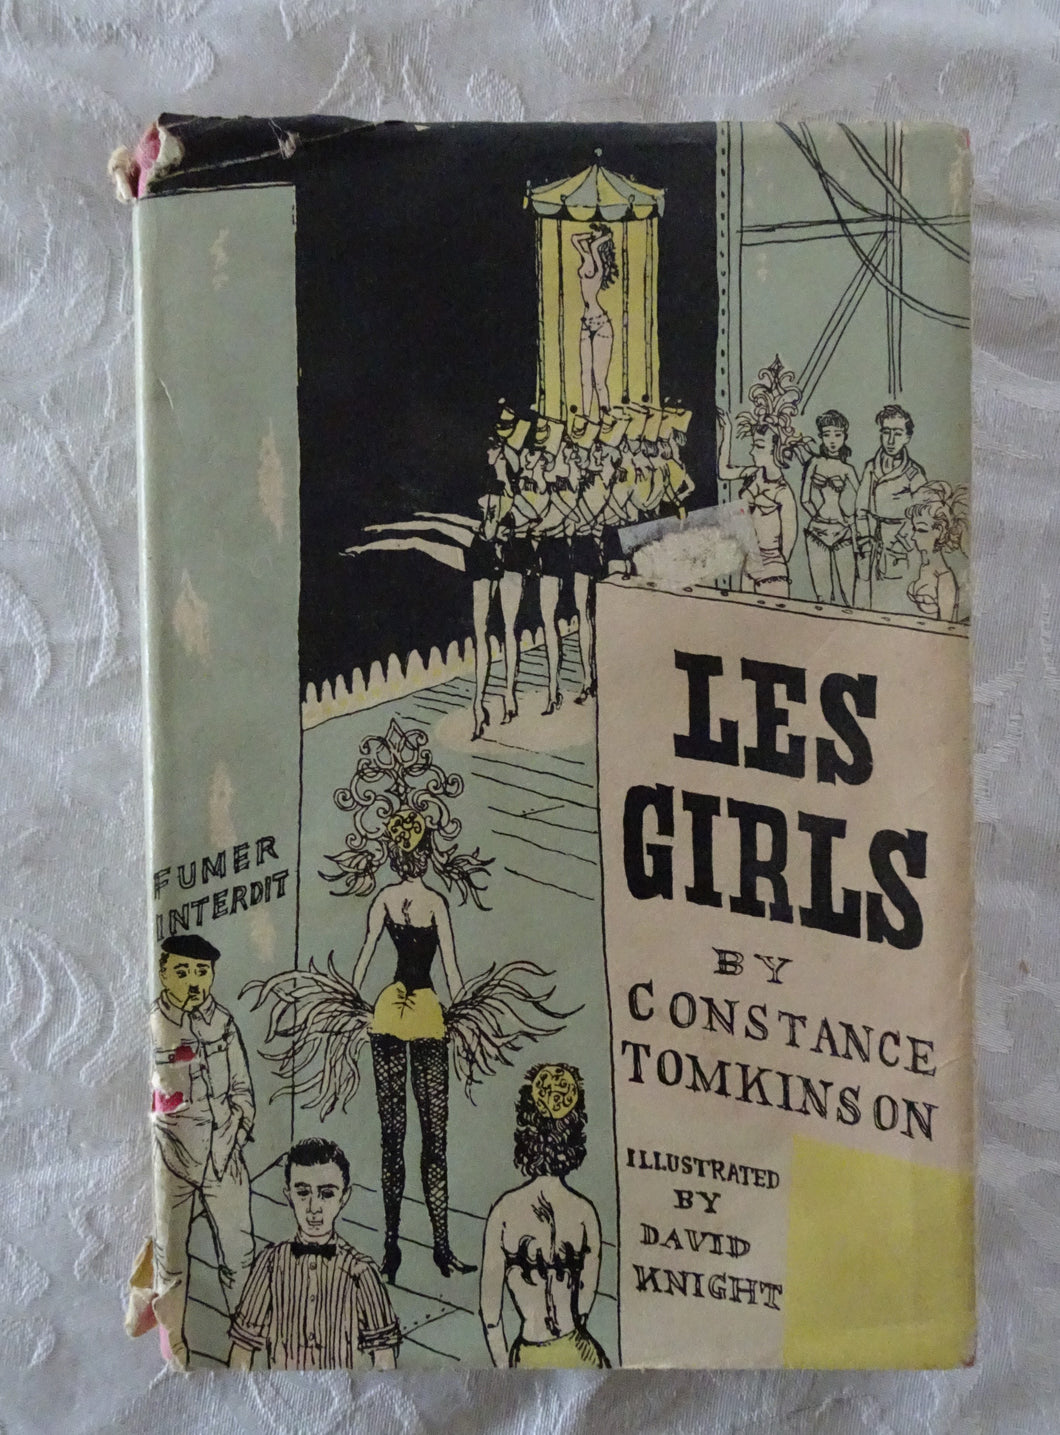 Les Girls by Constance Tomkinson